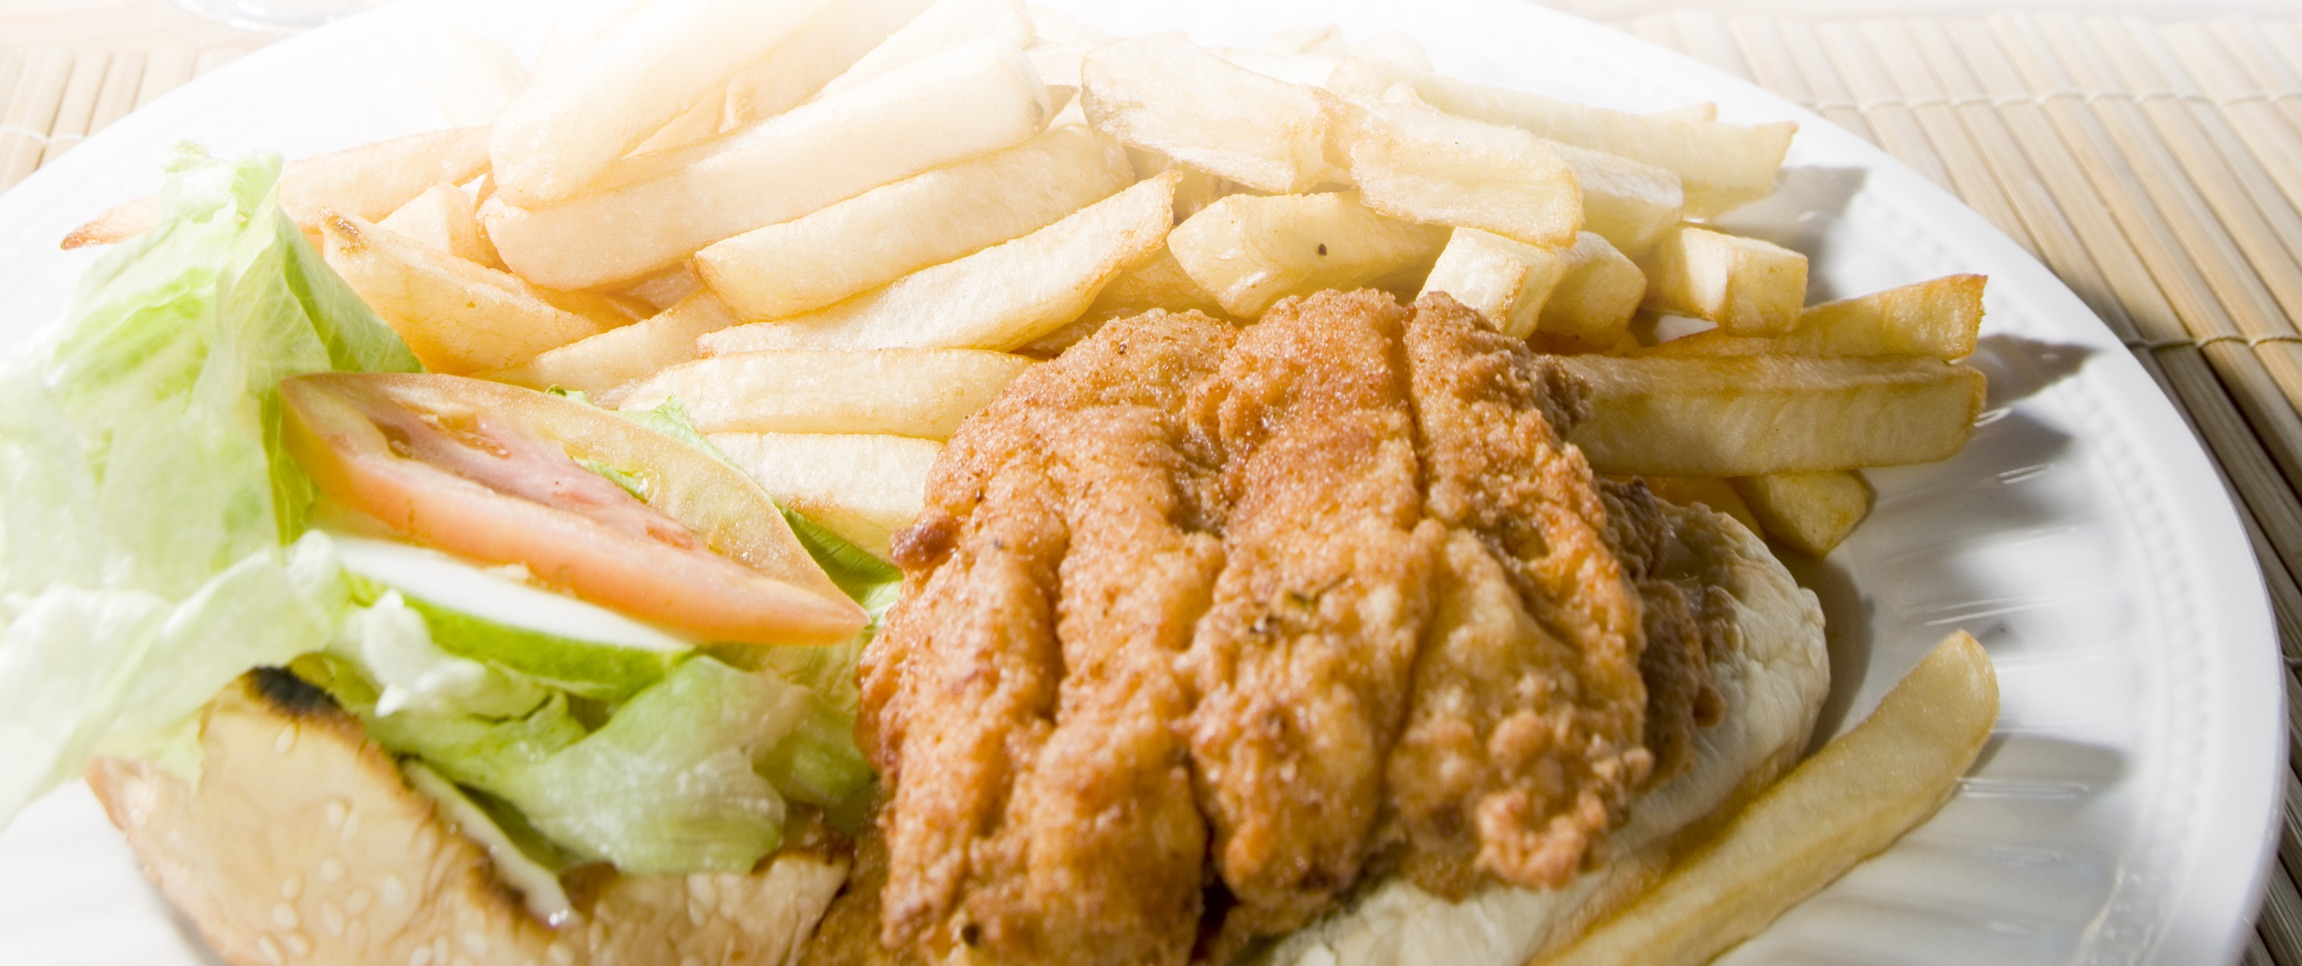 Fried Fish and French Fry Sandwich